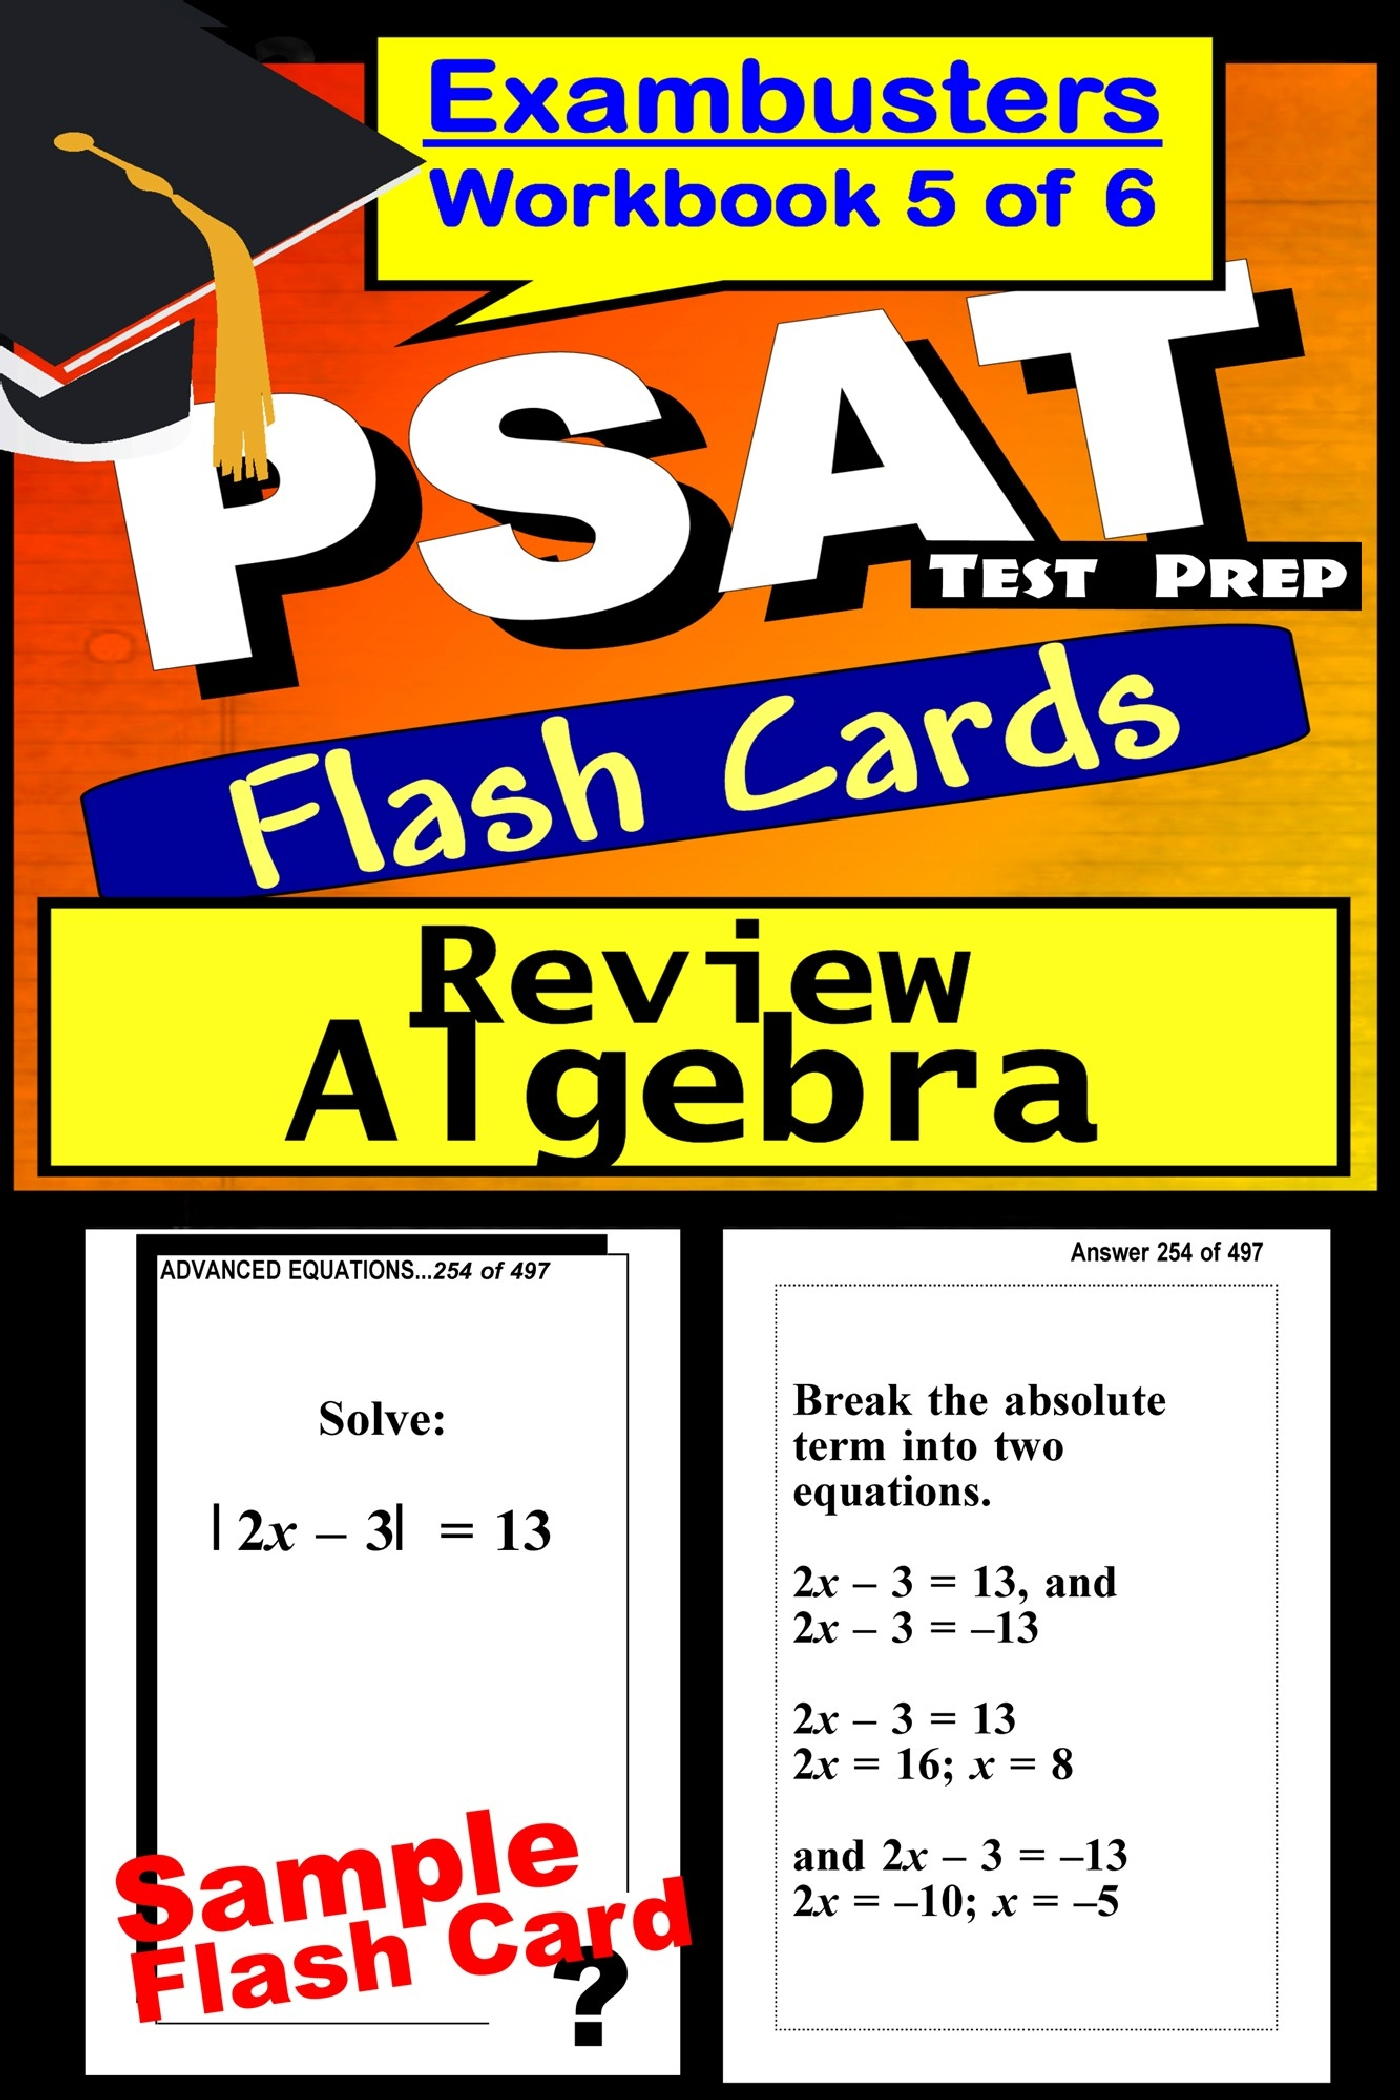 PSAT Test Prep Algebra Review--Exambusters Flash Cards--Workbook 5 of 6: PSAT Exam Study Guide